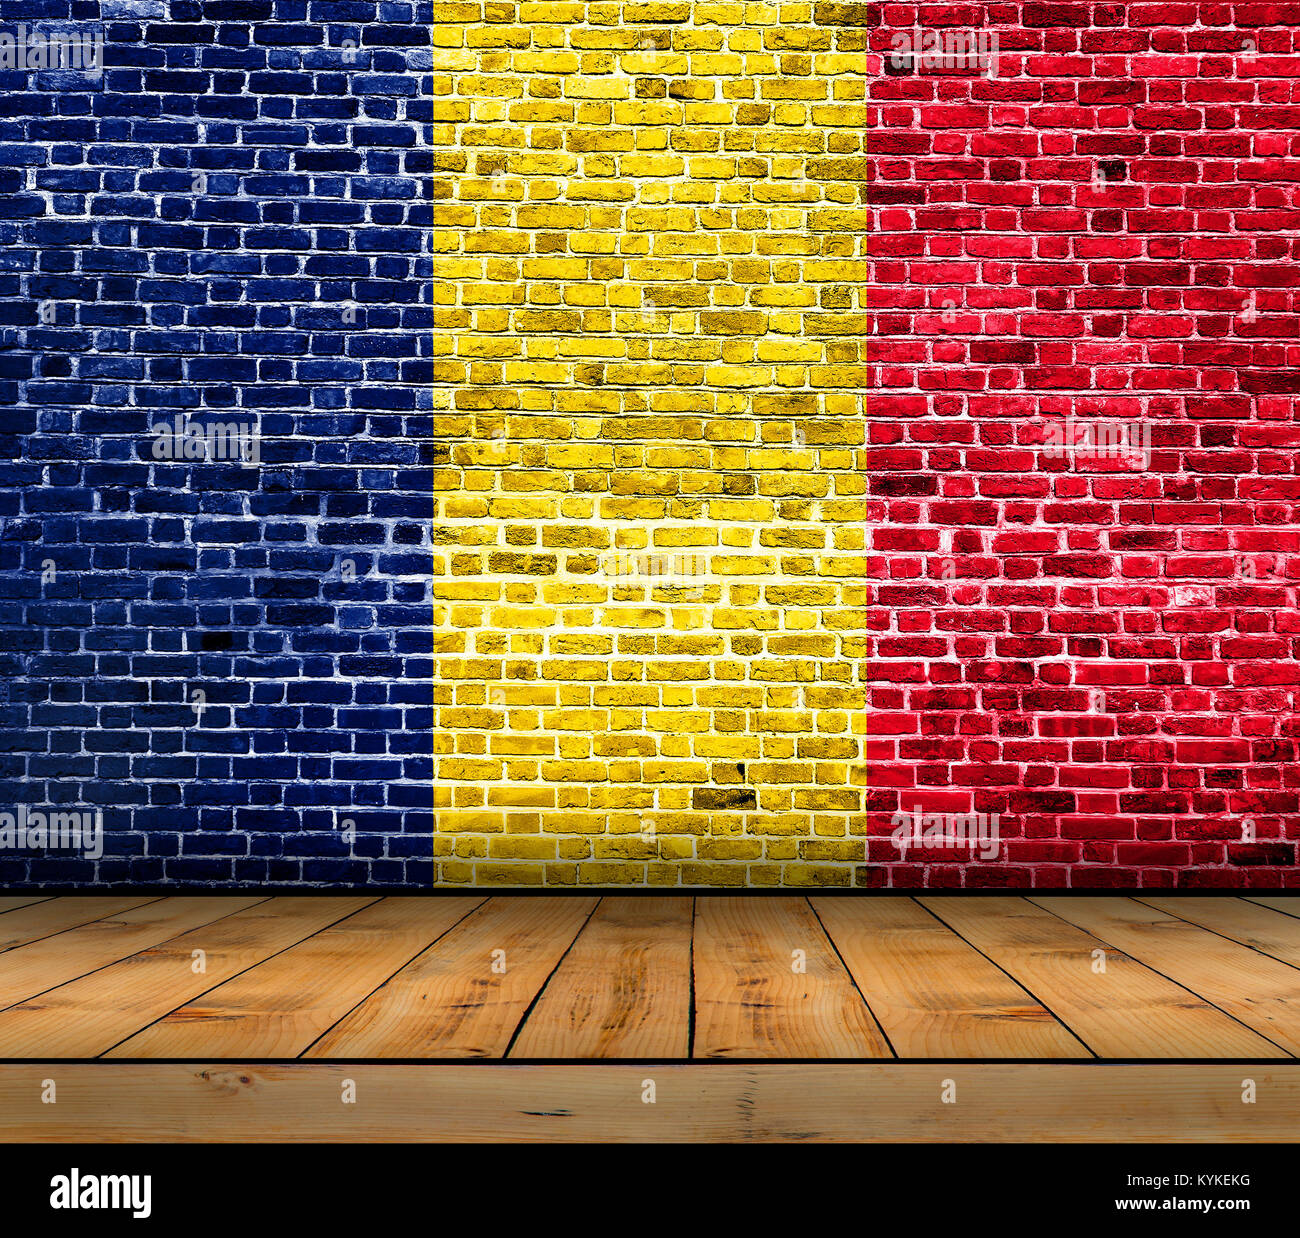 Chad flag painted on brick wall with wooden floor - Stock Image